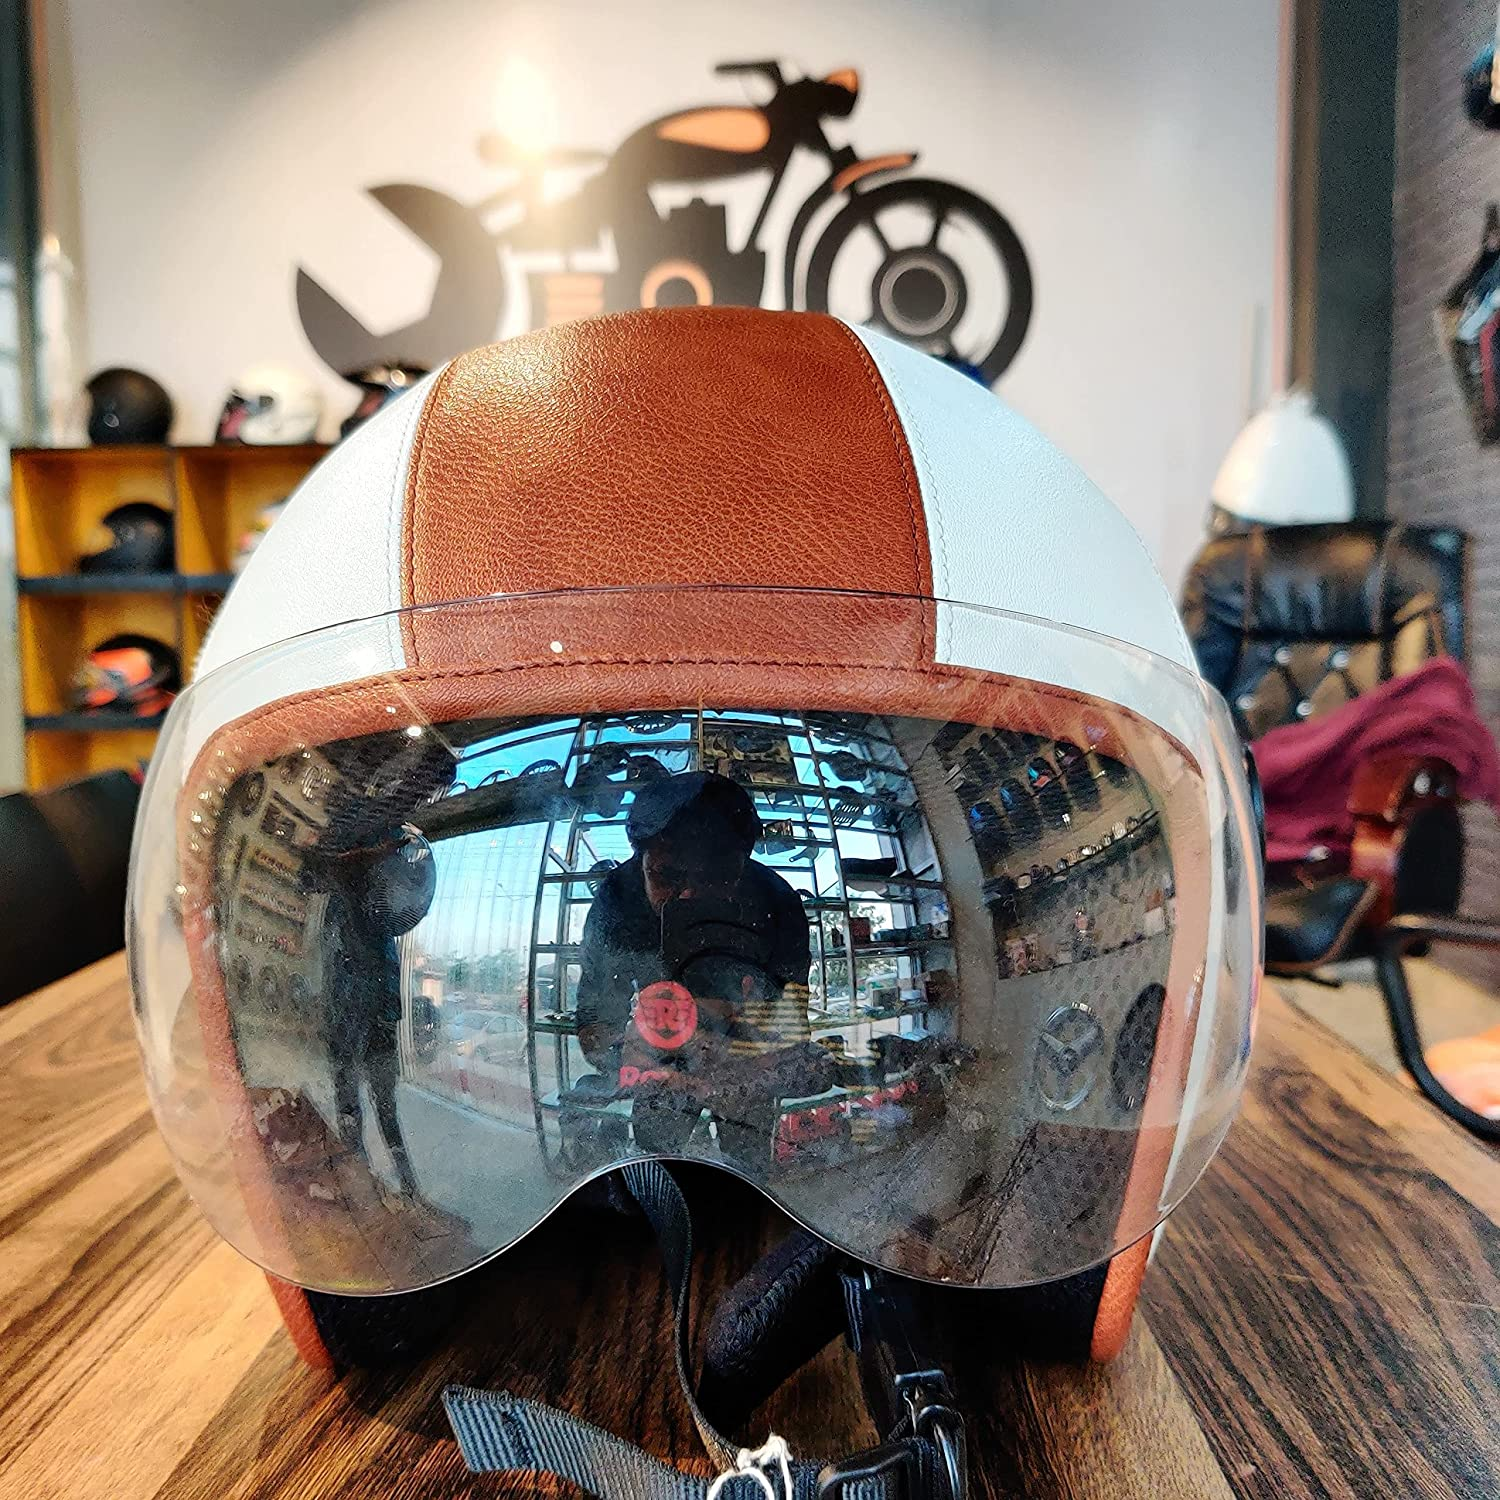 THE BIKERZ Leather Half White Brown FACE Max 84% OFF Fort Worth Mall Helmet